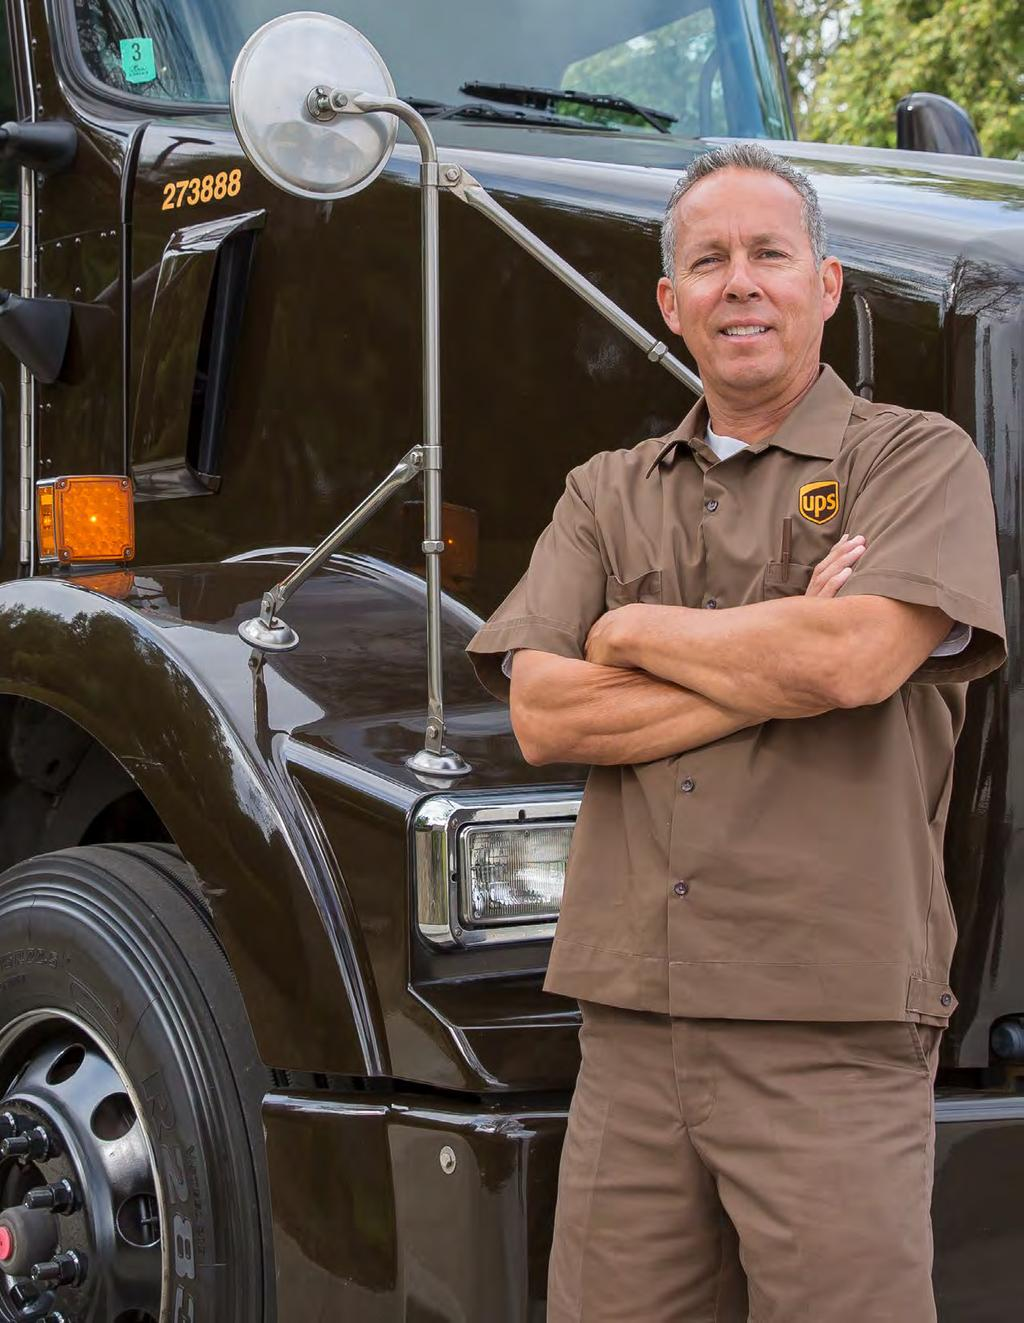 Environmental Responsibility COMMITTED TO MORE Mark Espinosa UPSer Mark Espinosa drives a Liquefied Natural Gas (LNG) vehicle on his daily Southern California route, playing an important role in the